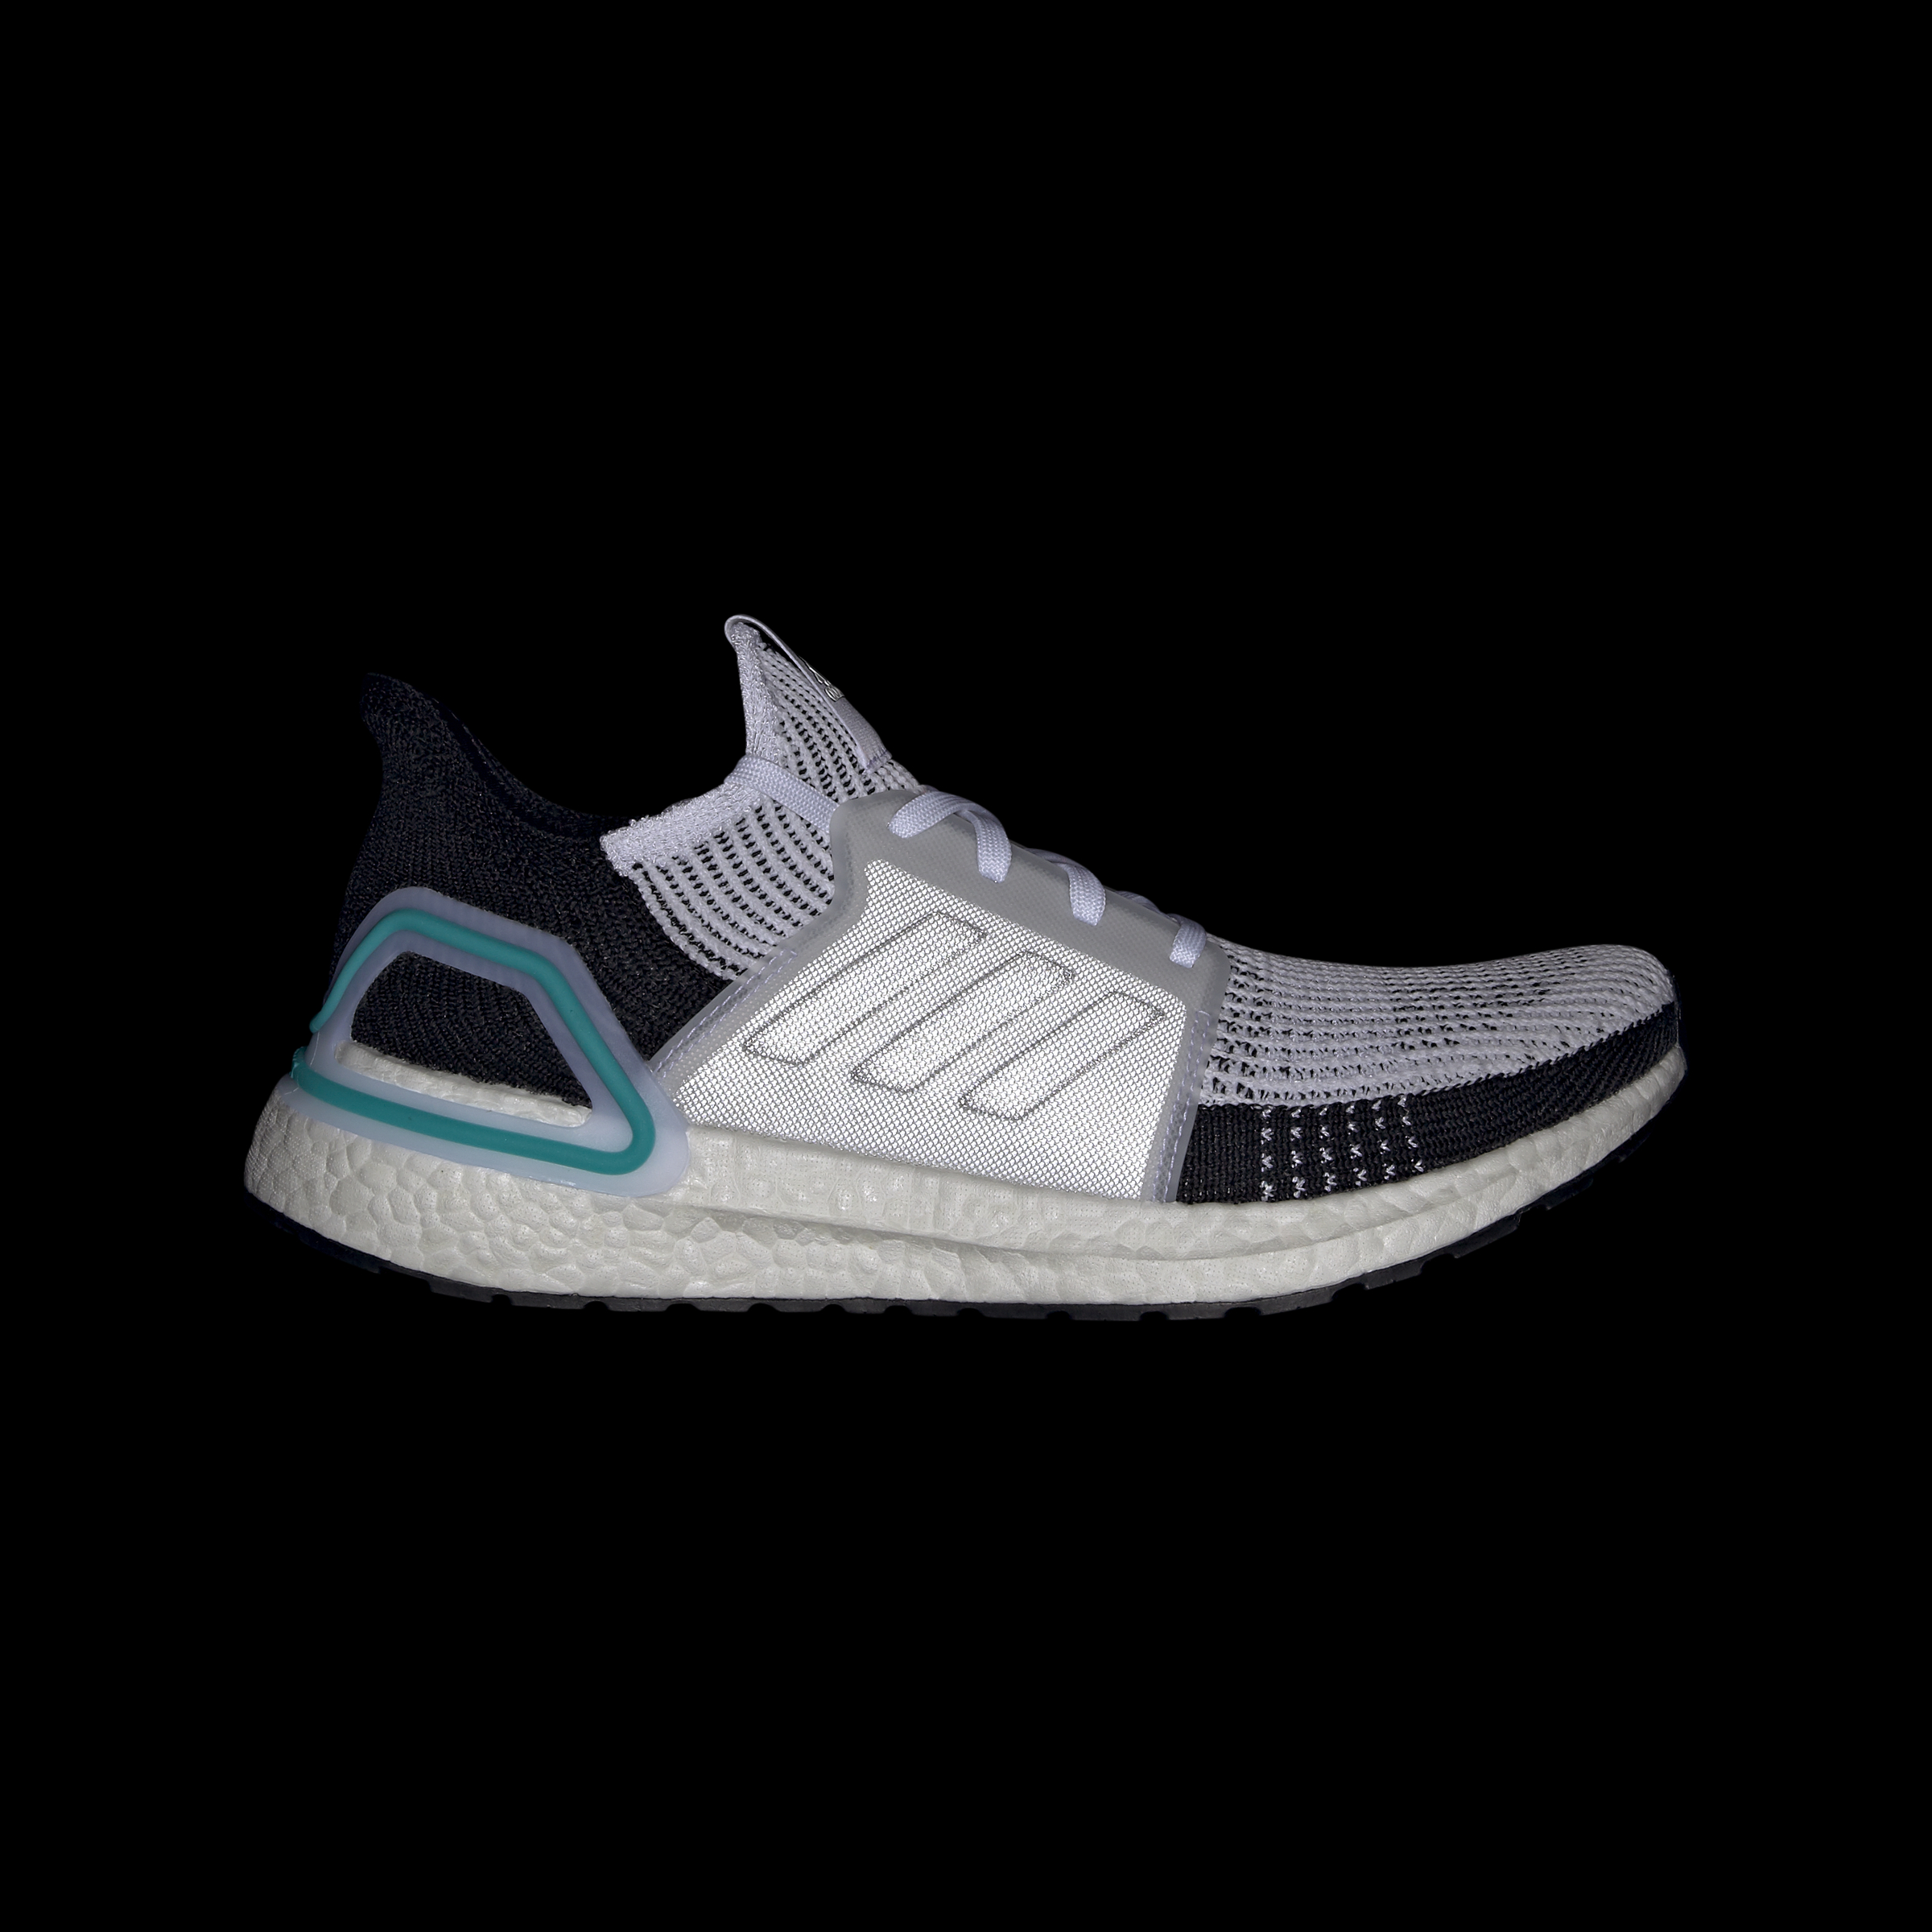 adidas-Ultraboost-19-Shoes-Athletic-amp-Sneakers thumbnail 143